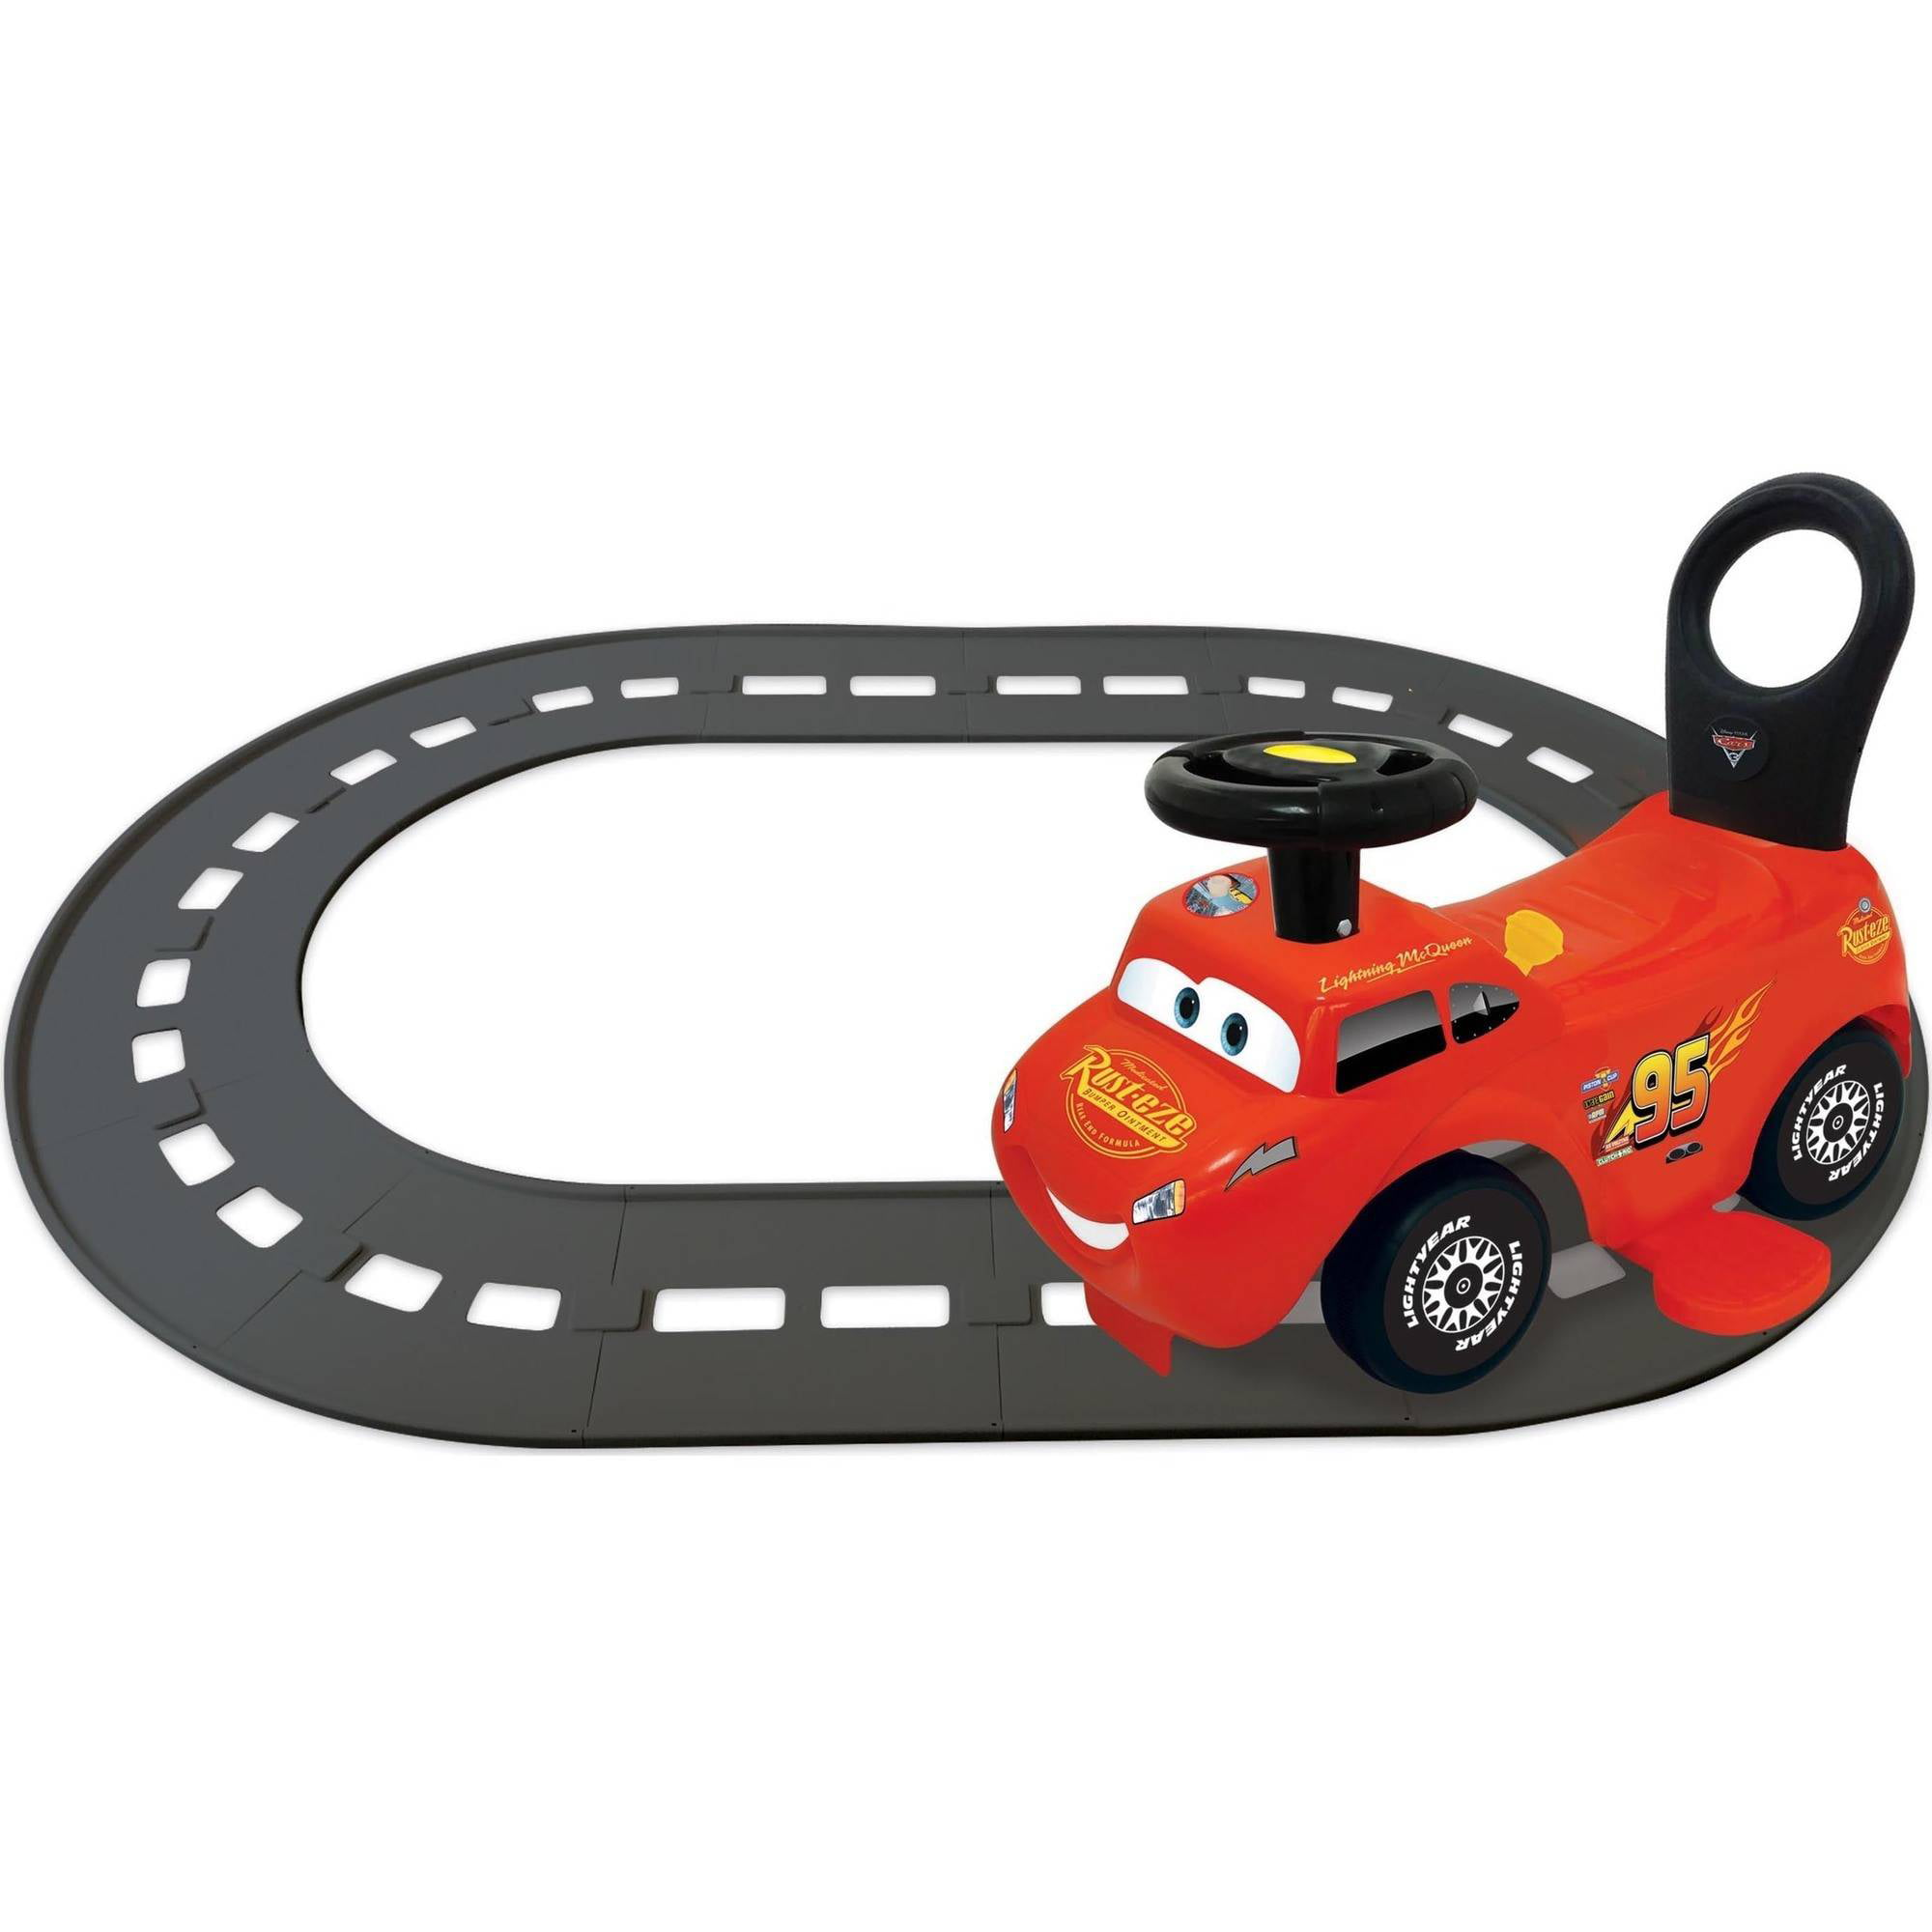 Kiddieland Disney Cars Lightning McQueen 3-in-1 Go-Go-Racer Ride-On with Track by Kiddieland